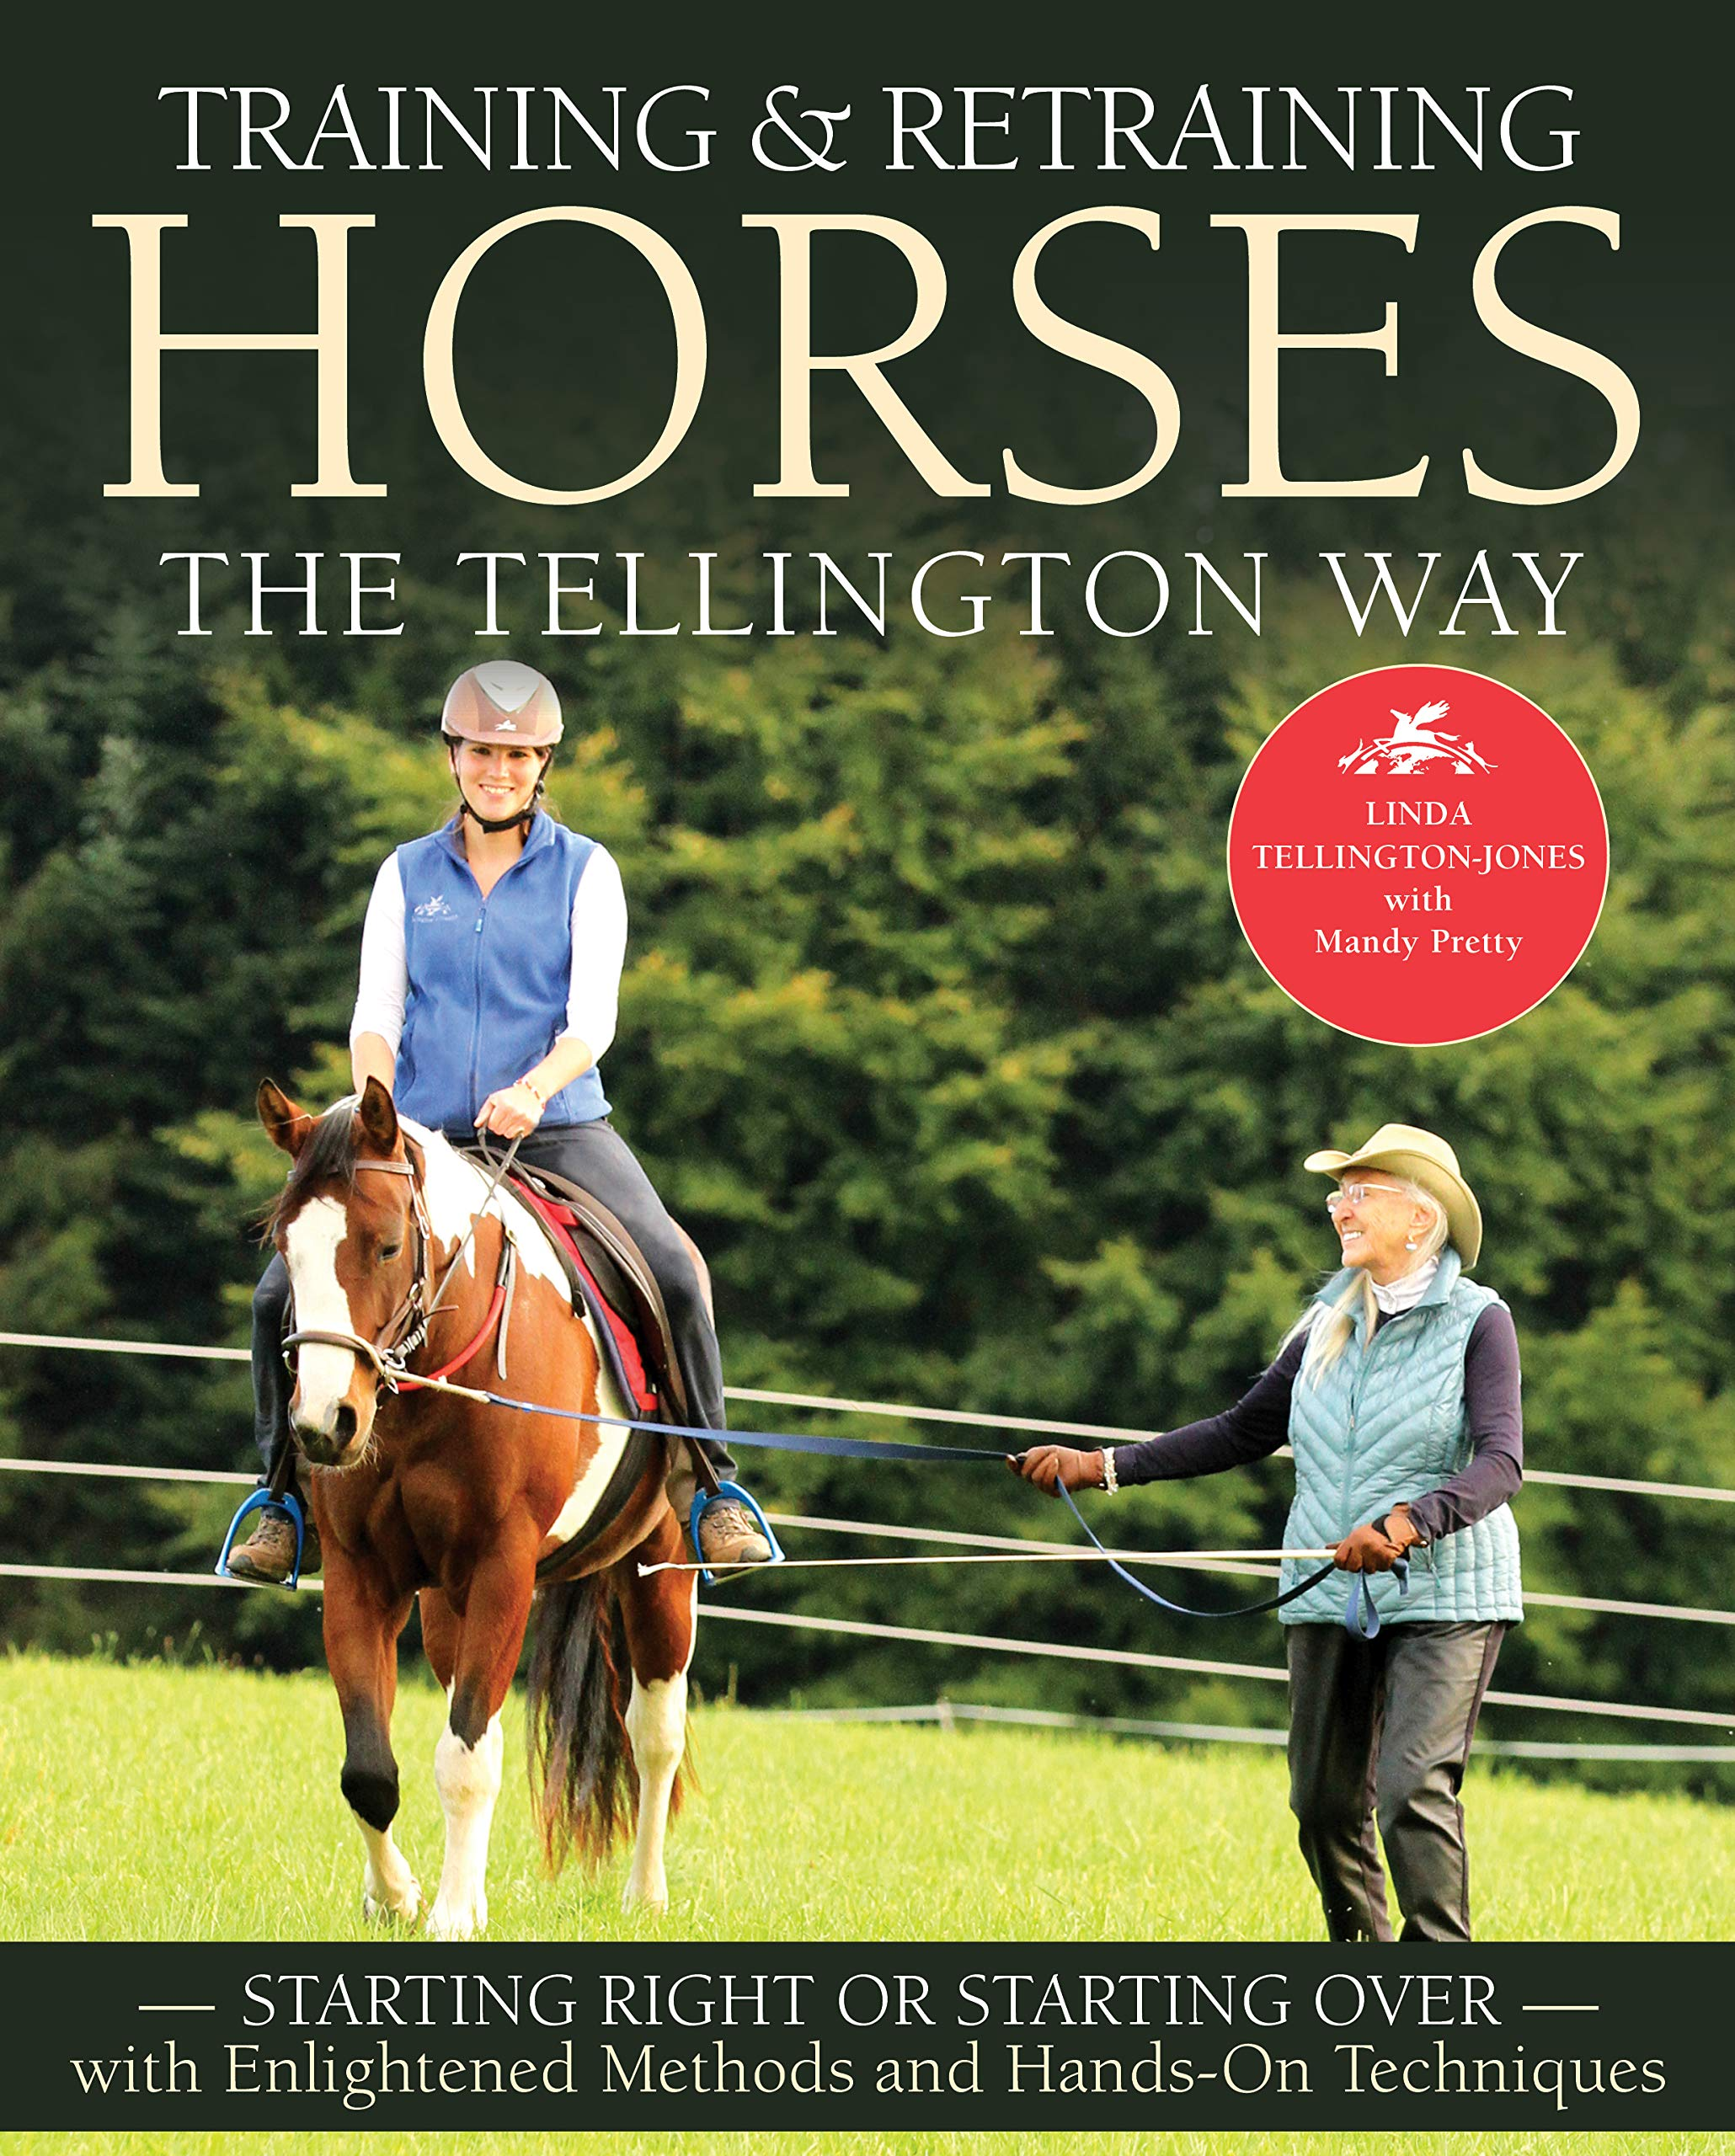 Download Training and Retraining Horses the Tellington Way: Starting Right or Starting Over with Enlightened Methods and Hands On T...